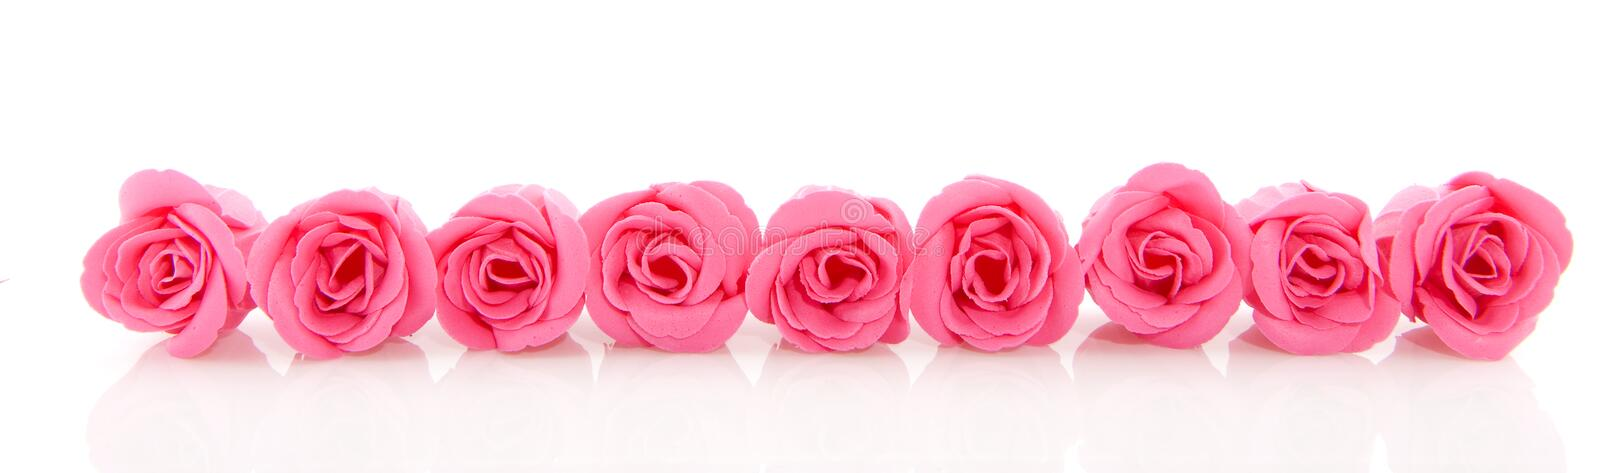 Download Row pink soap roses stock image. Image of pink, leaves - 13021813